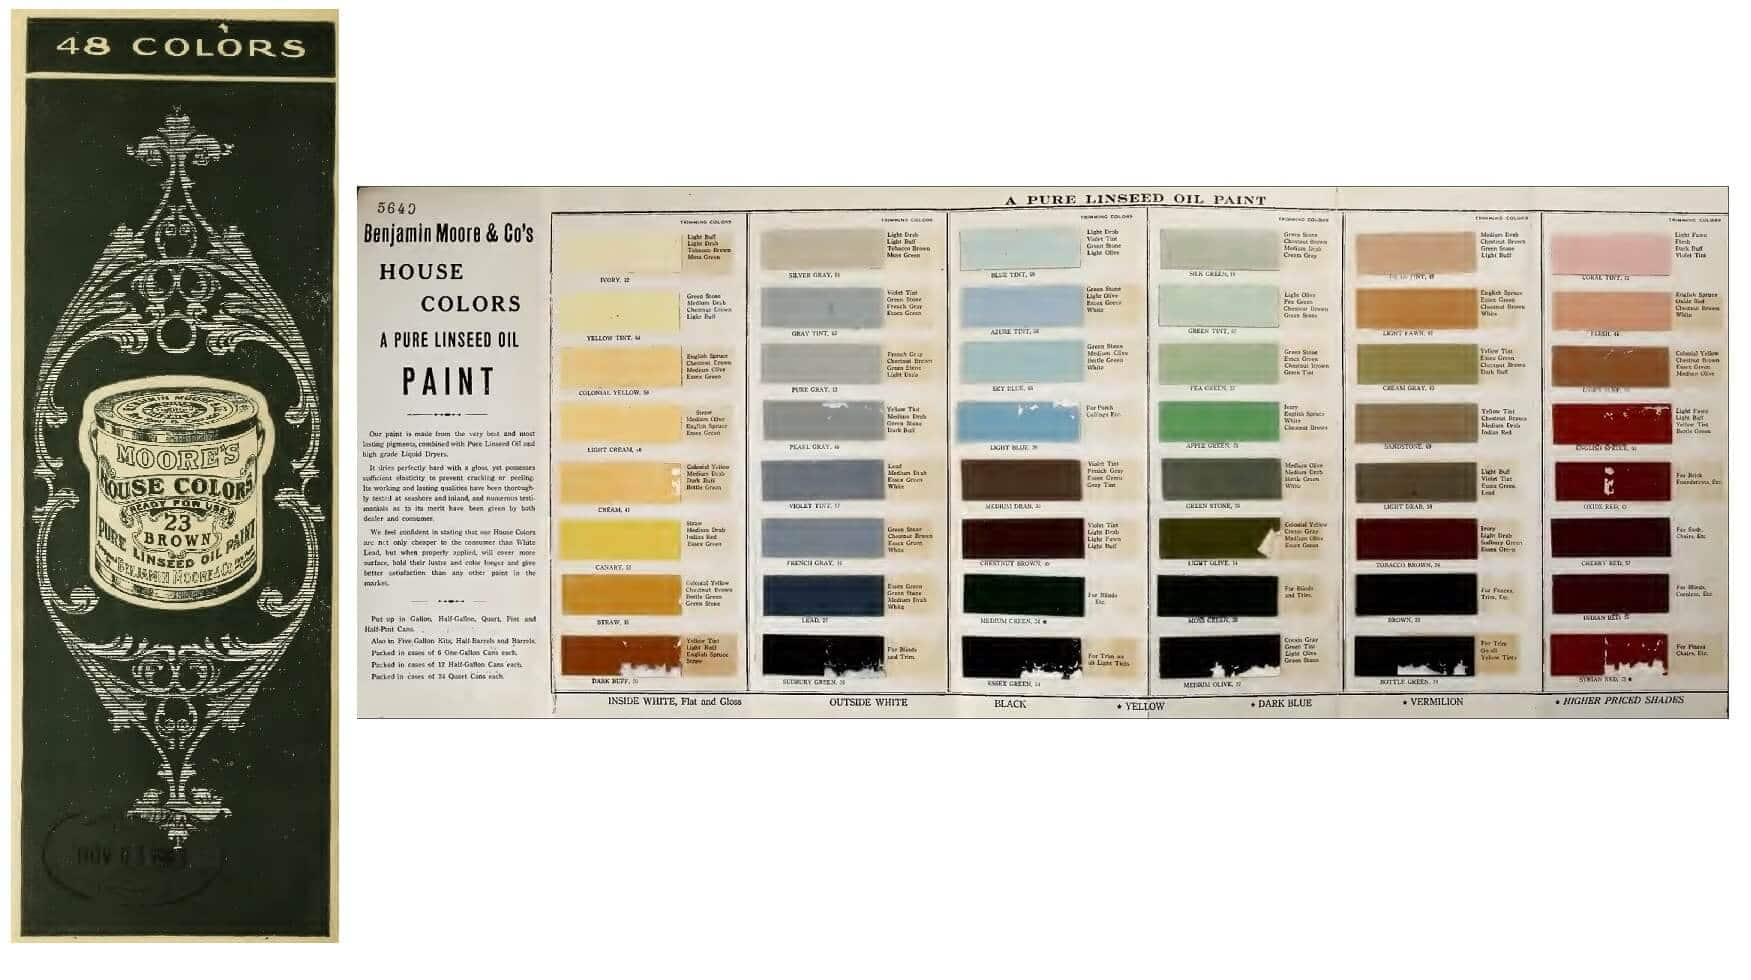 How to choose an exterior paint color for your home james campbell - Selecting exterior paint colors concept ...